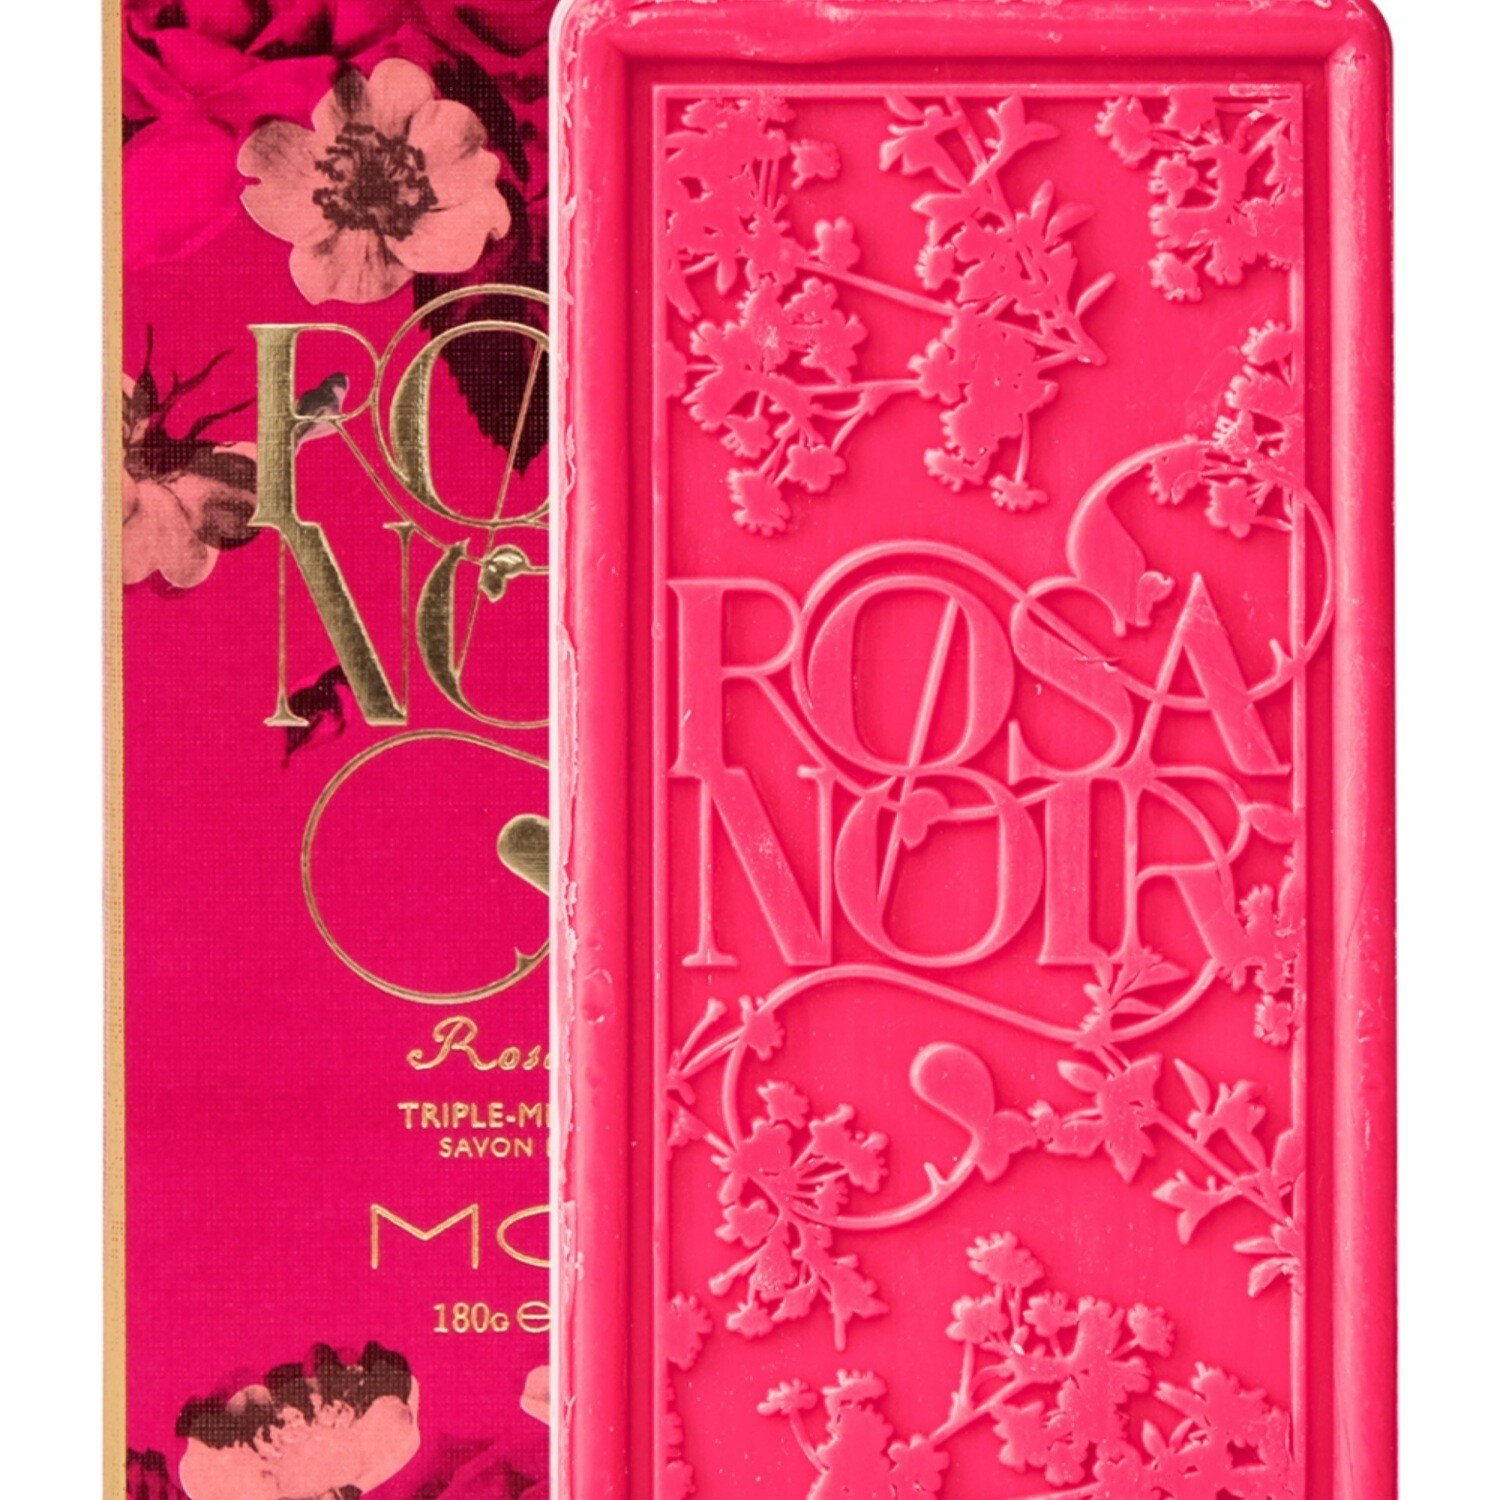 Mor Rosa Noir Triple Milled Soap In Box